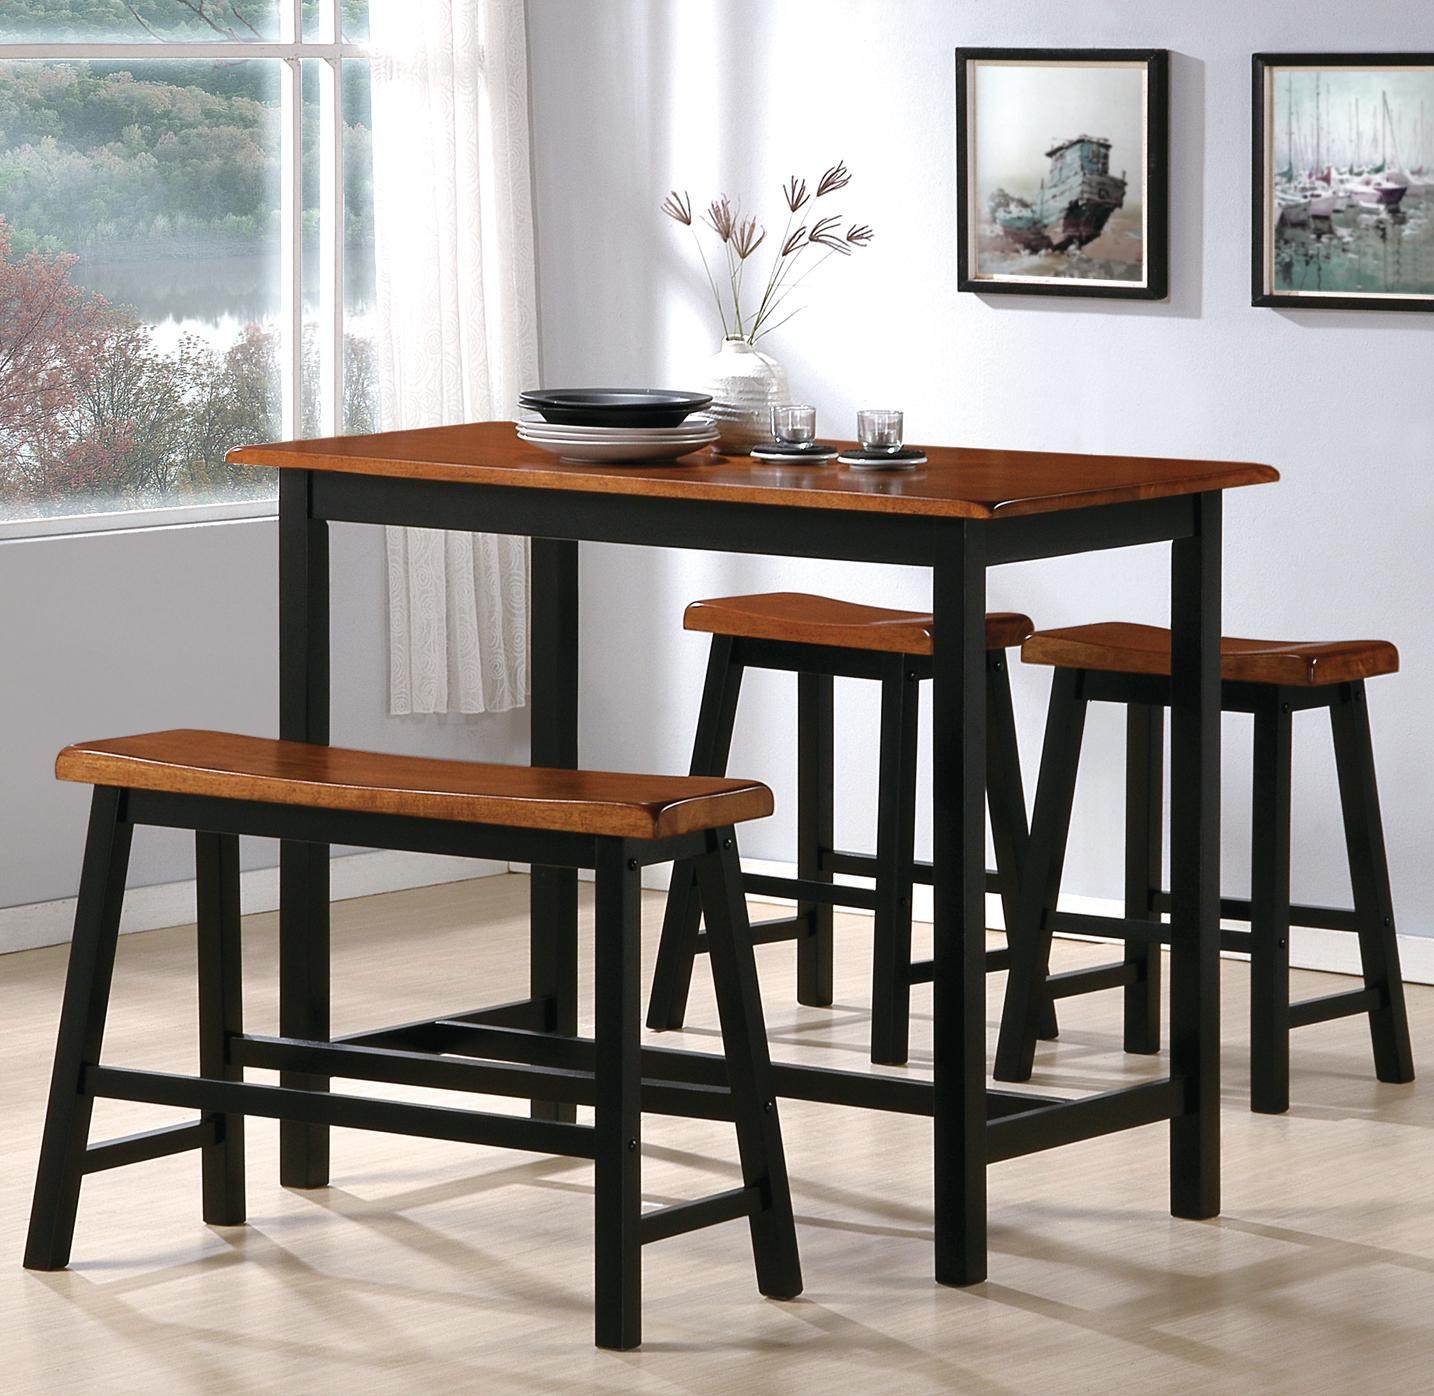 high table and chairs for kitchen desk chair amazon uk cm tyler 4 piece counter height set with bench